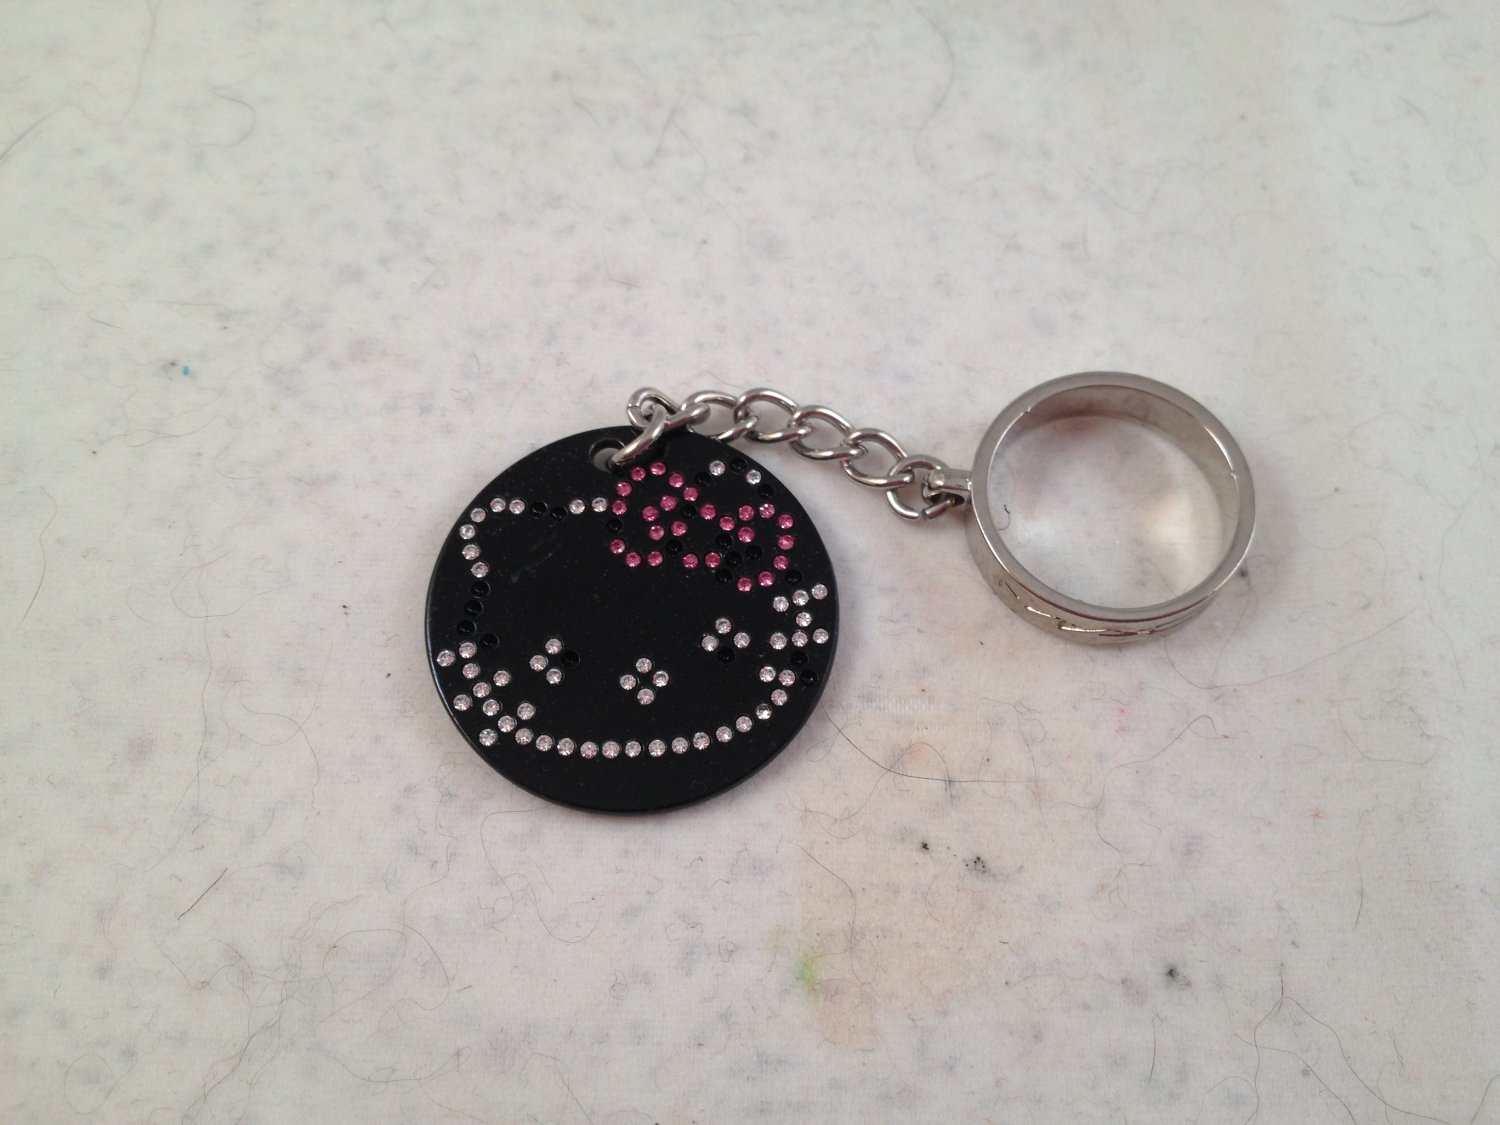 MAC Cosmetics Hello Kitty Collection Dazzleglass Charm Only collector's item *damaged*